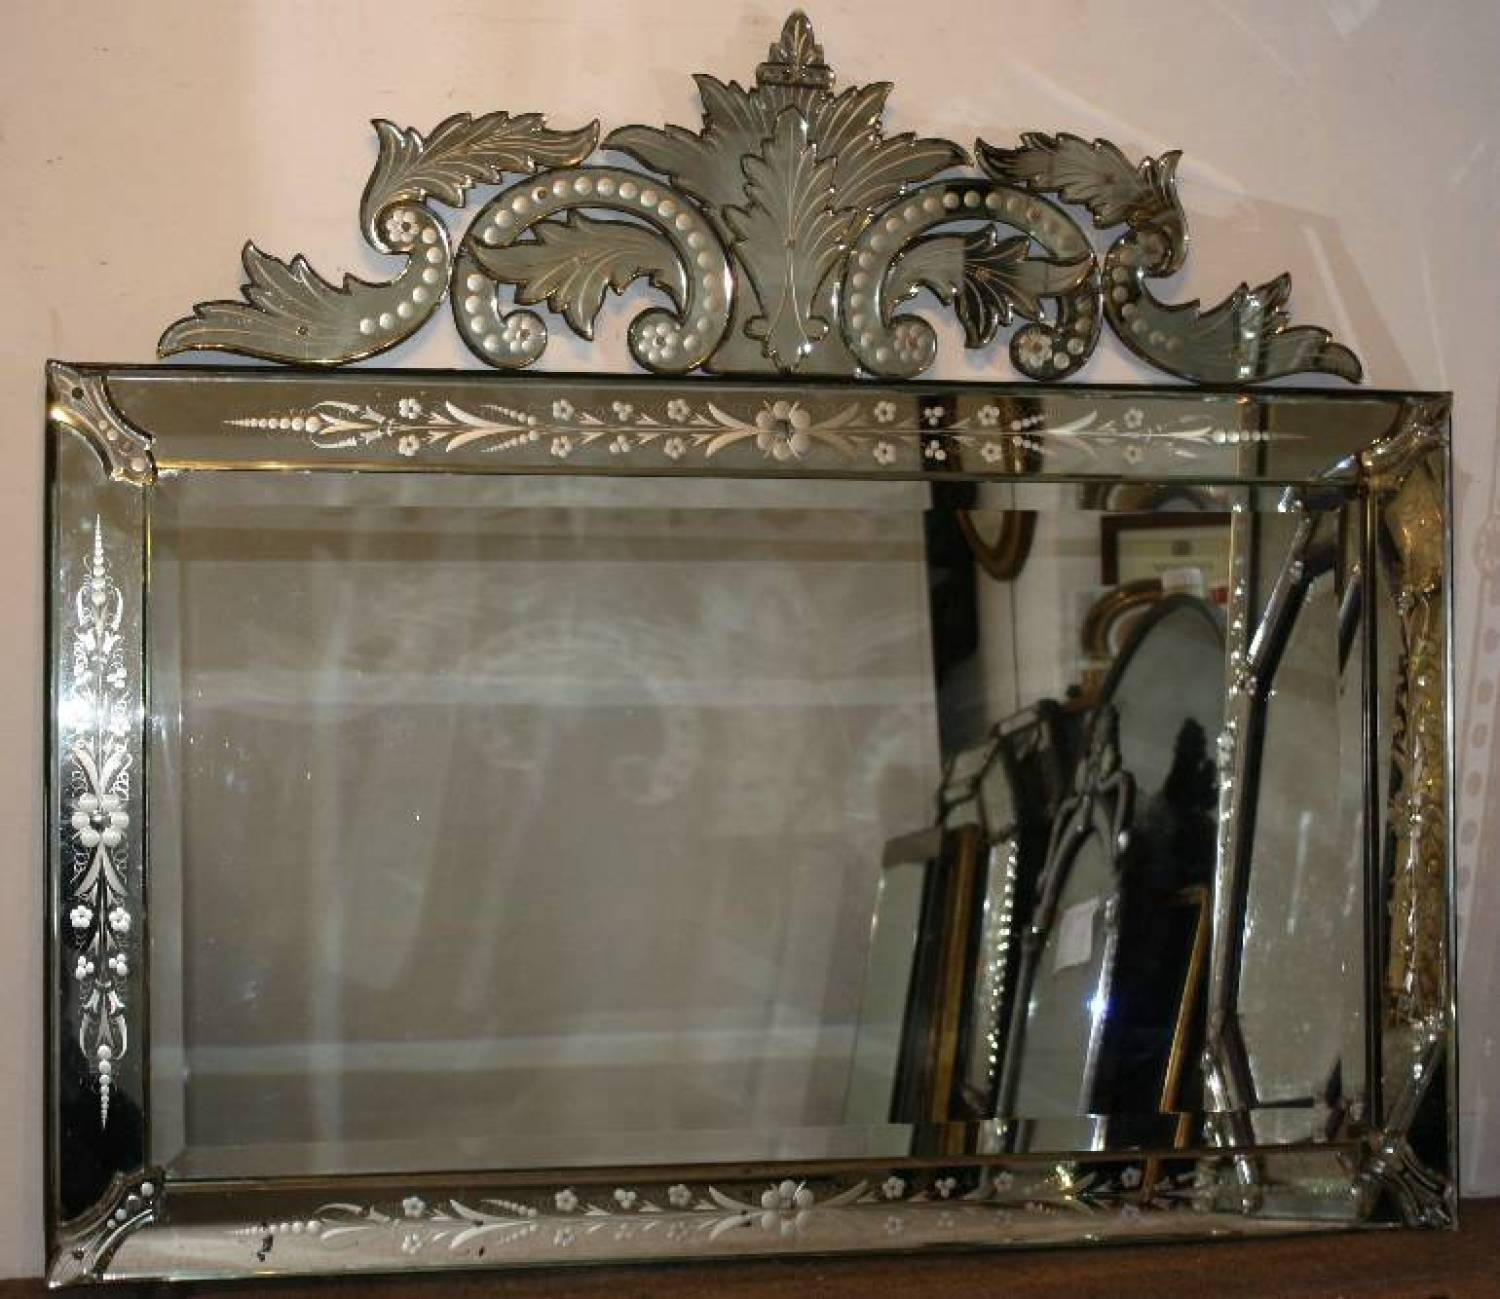 Interior: Collosal Antique Venetian Mirror For Home Decorating Inside Cheap Venetian Mirrors (View 7 of 15)